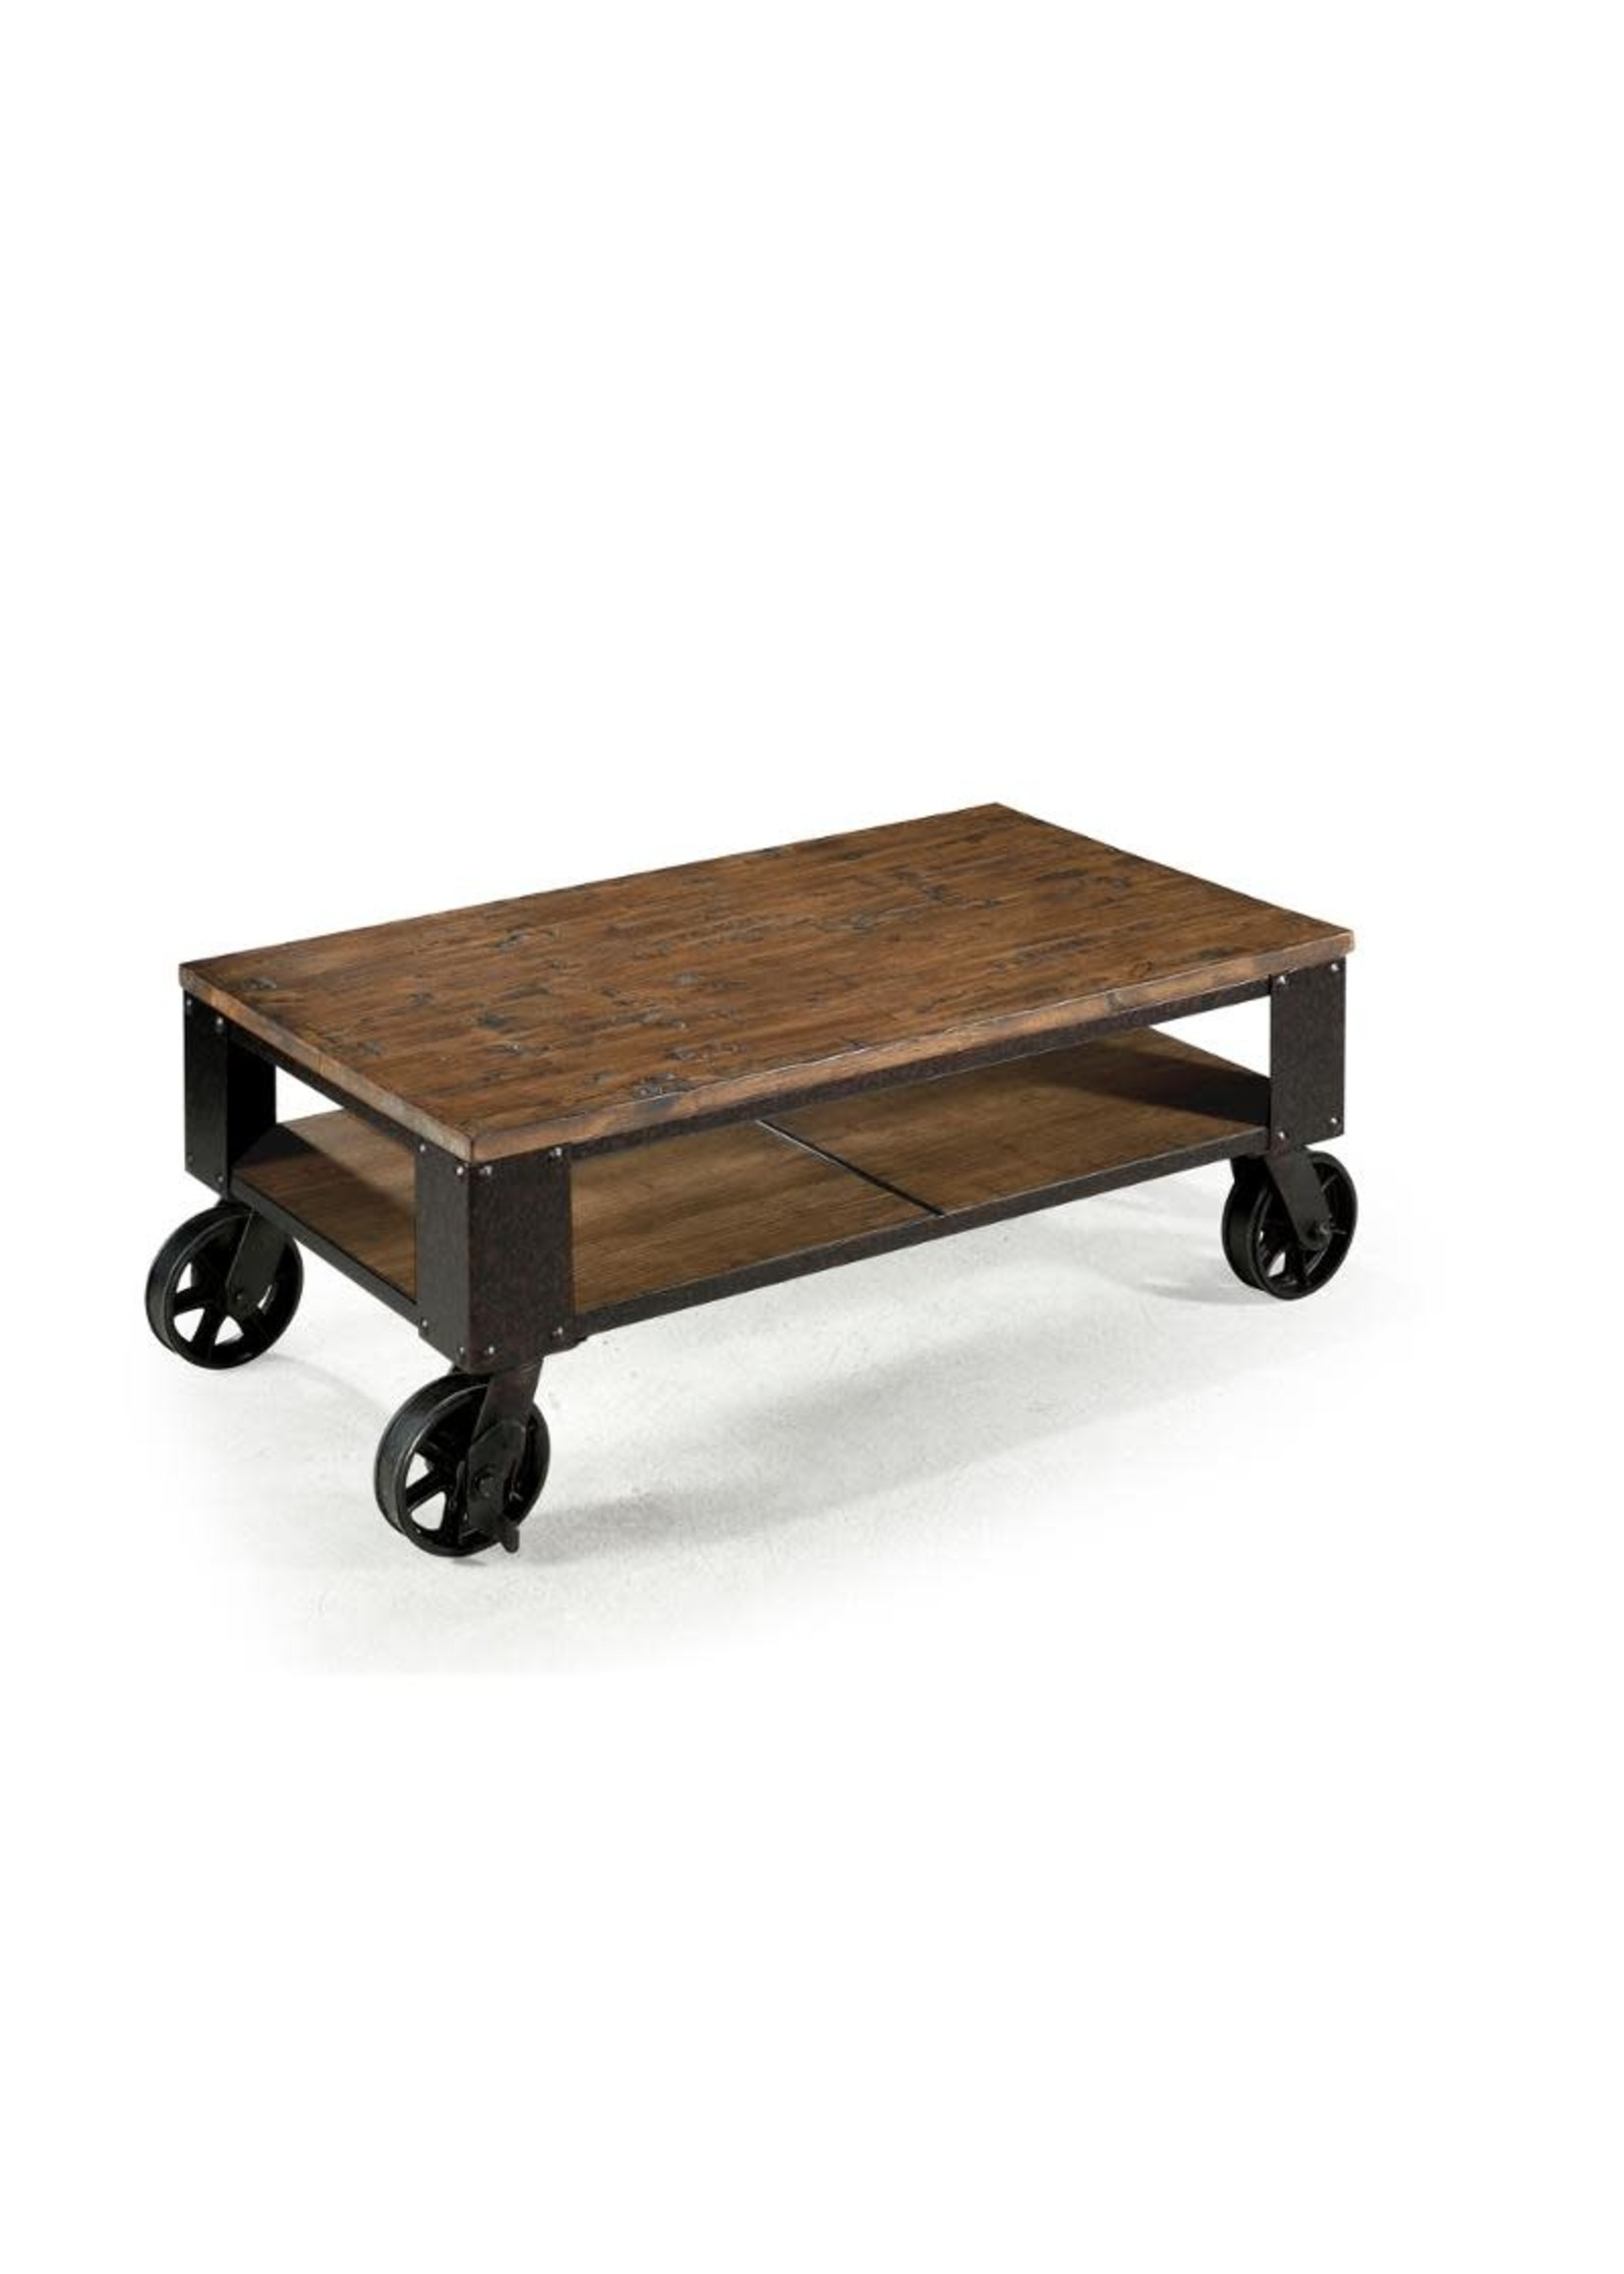 PINEBROOK WOOD RECTANGULAR COCKTAIL TABLE W/ CASTERS